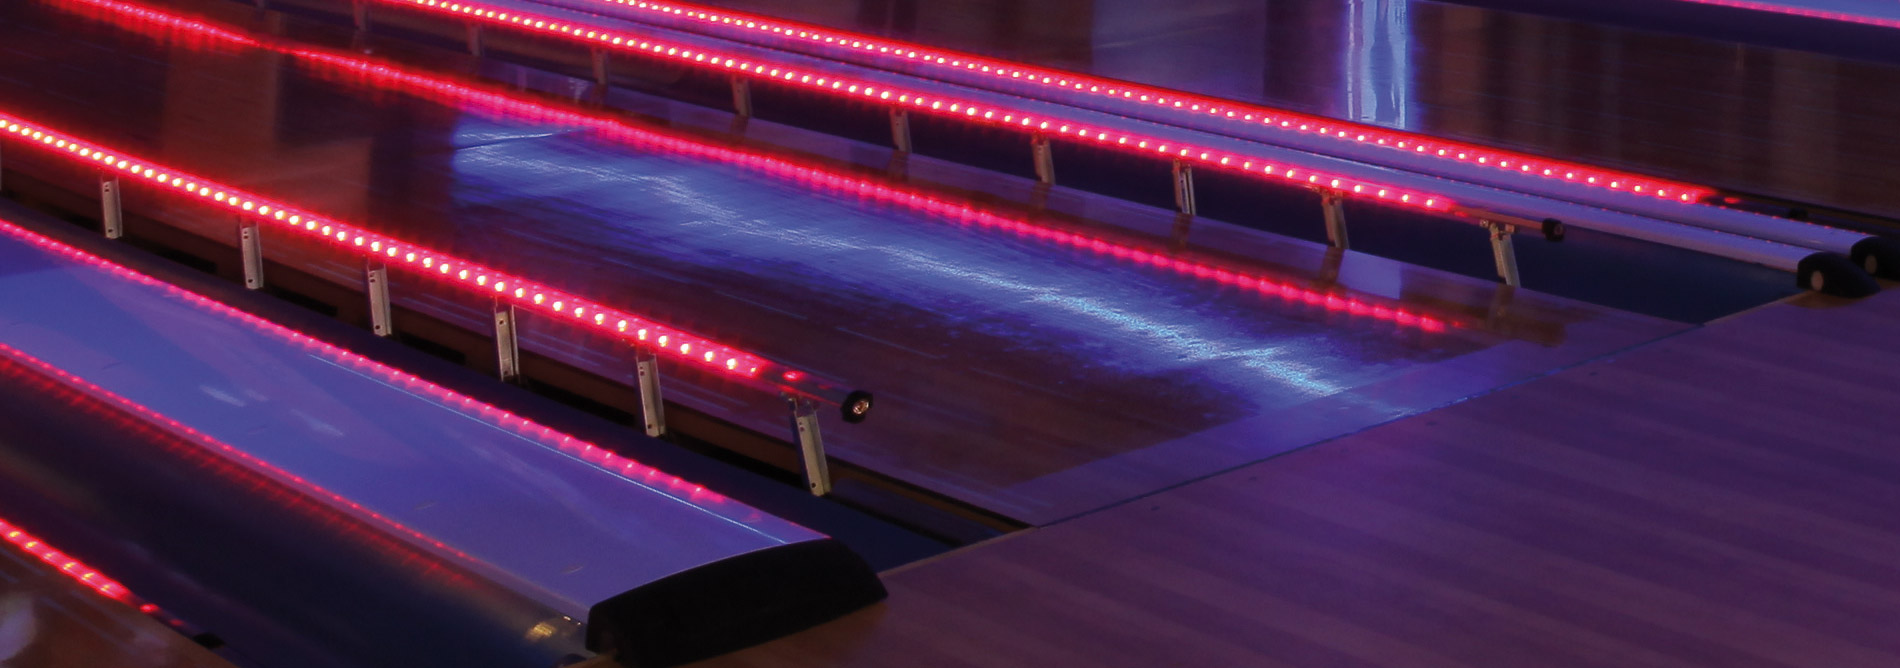 Bowling-QubicaAMF-Lane-Accessories-banner.jpg